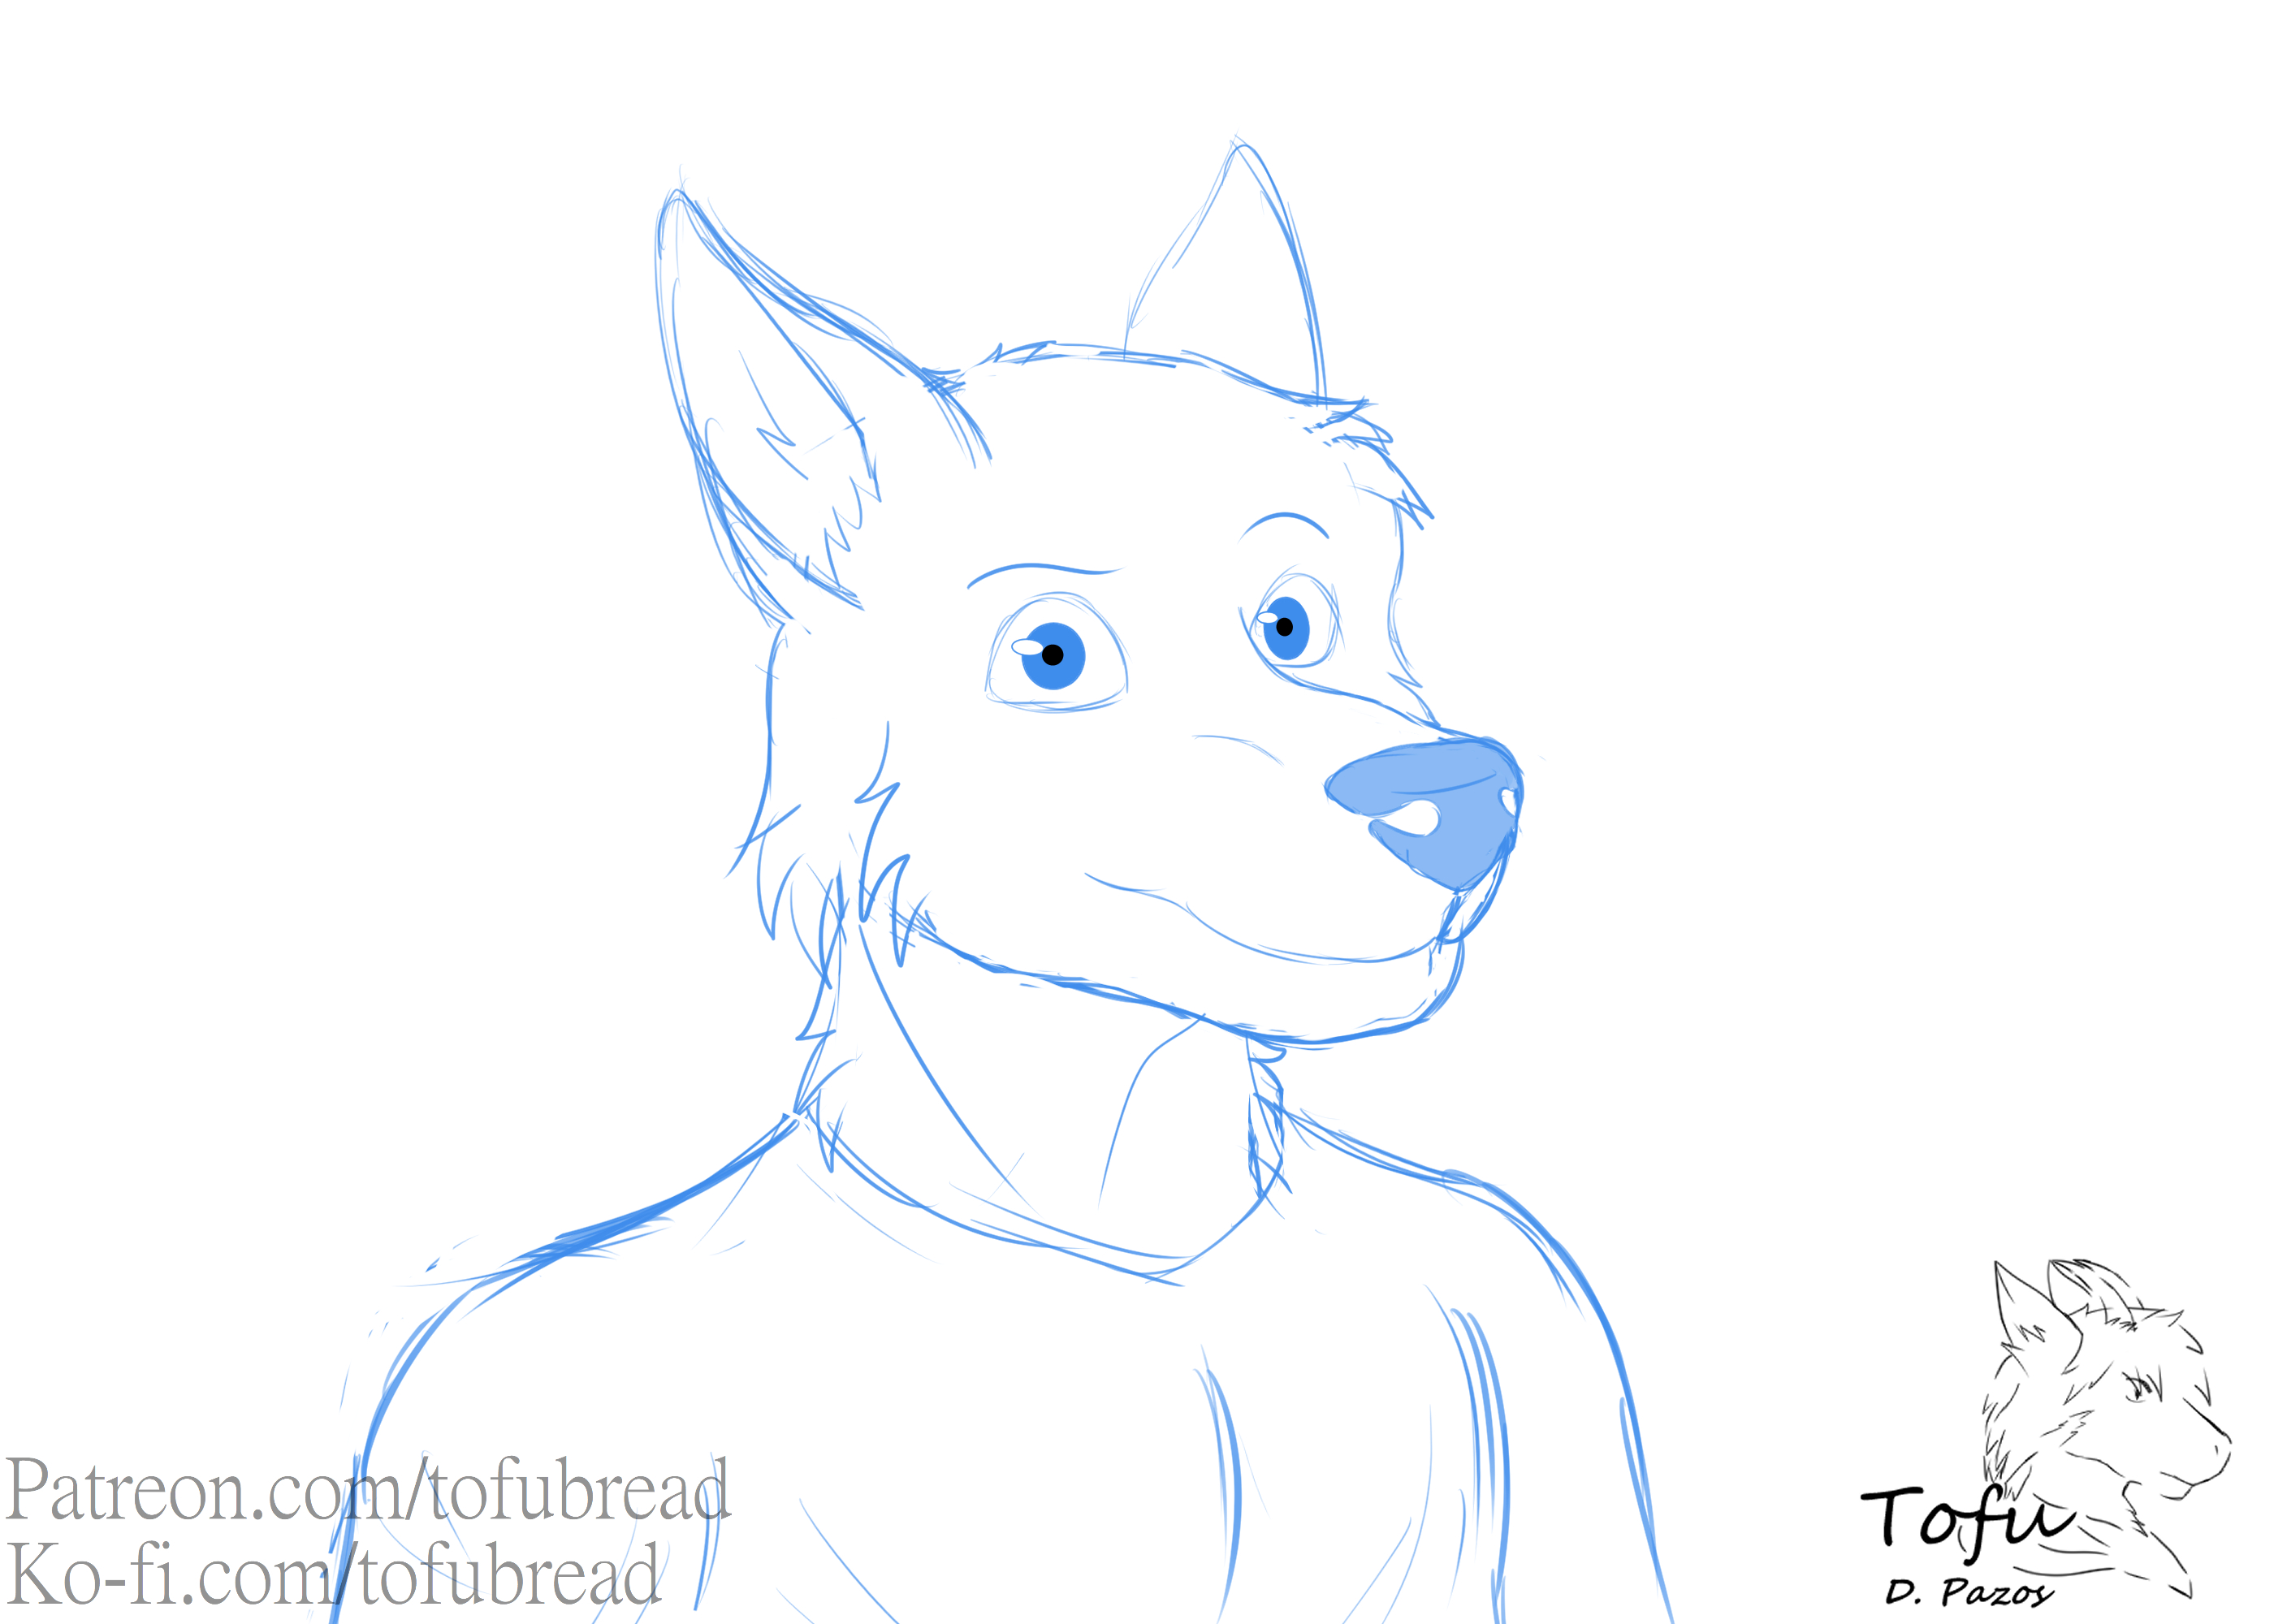 A yote for QV